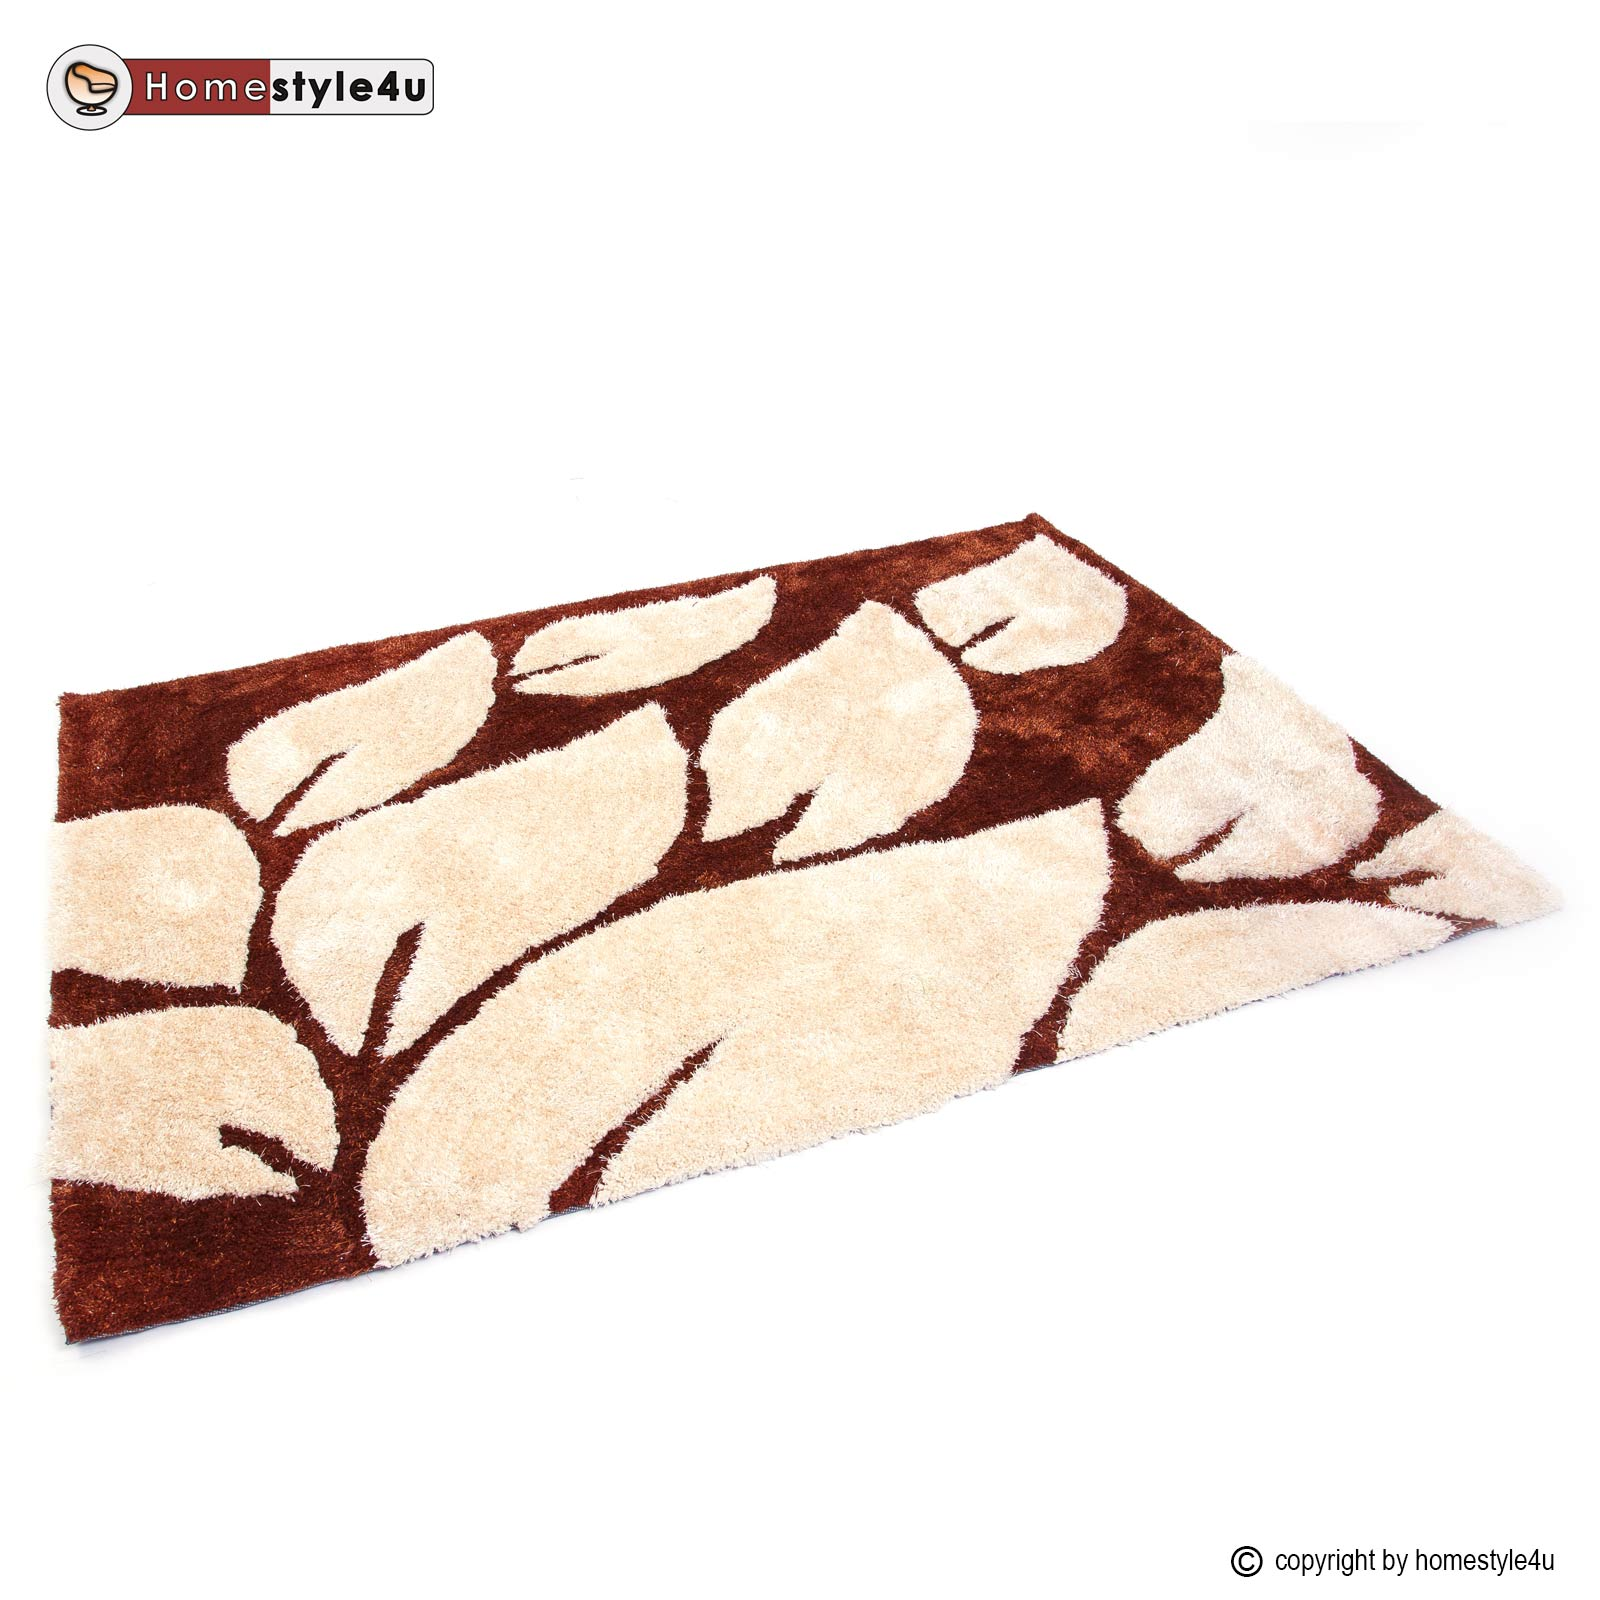 Shaggy Teppich Ivory Shaggy Rugs 80 X 150 Brown Carpet